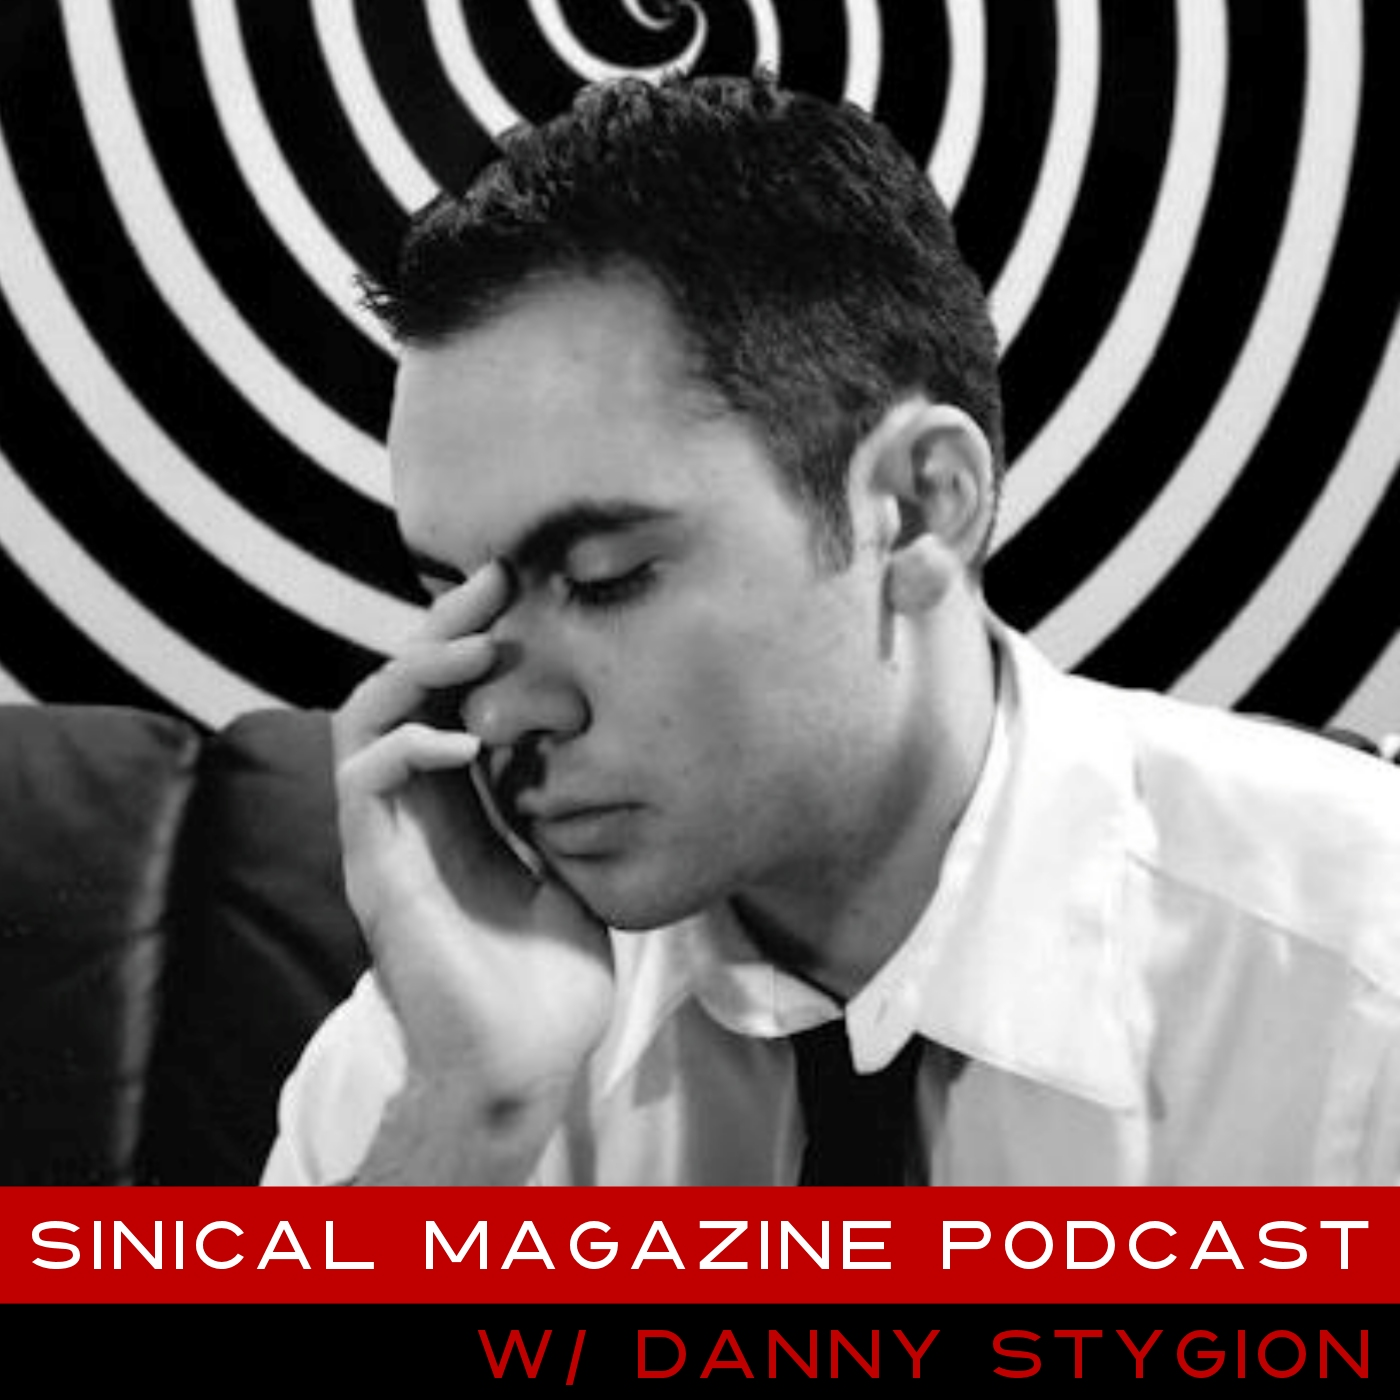 The Sinical Magazine Podcast